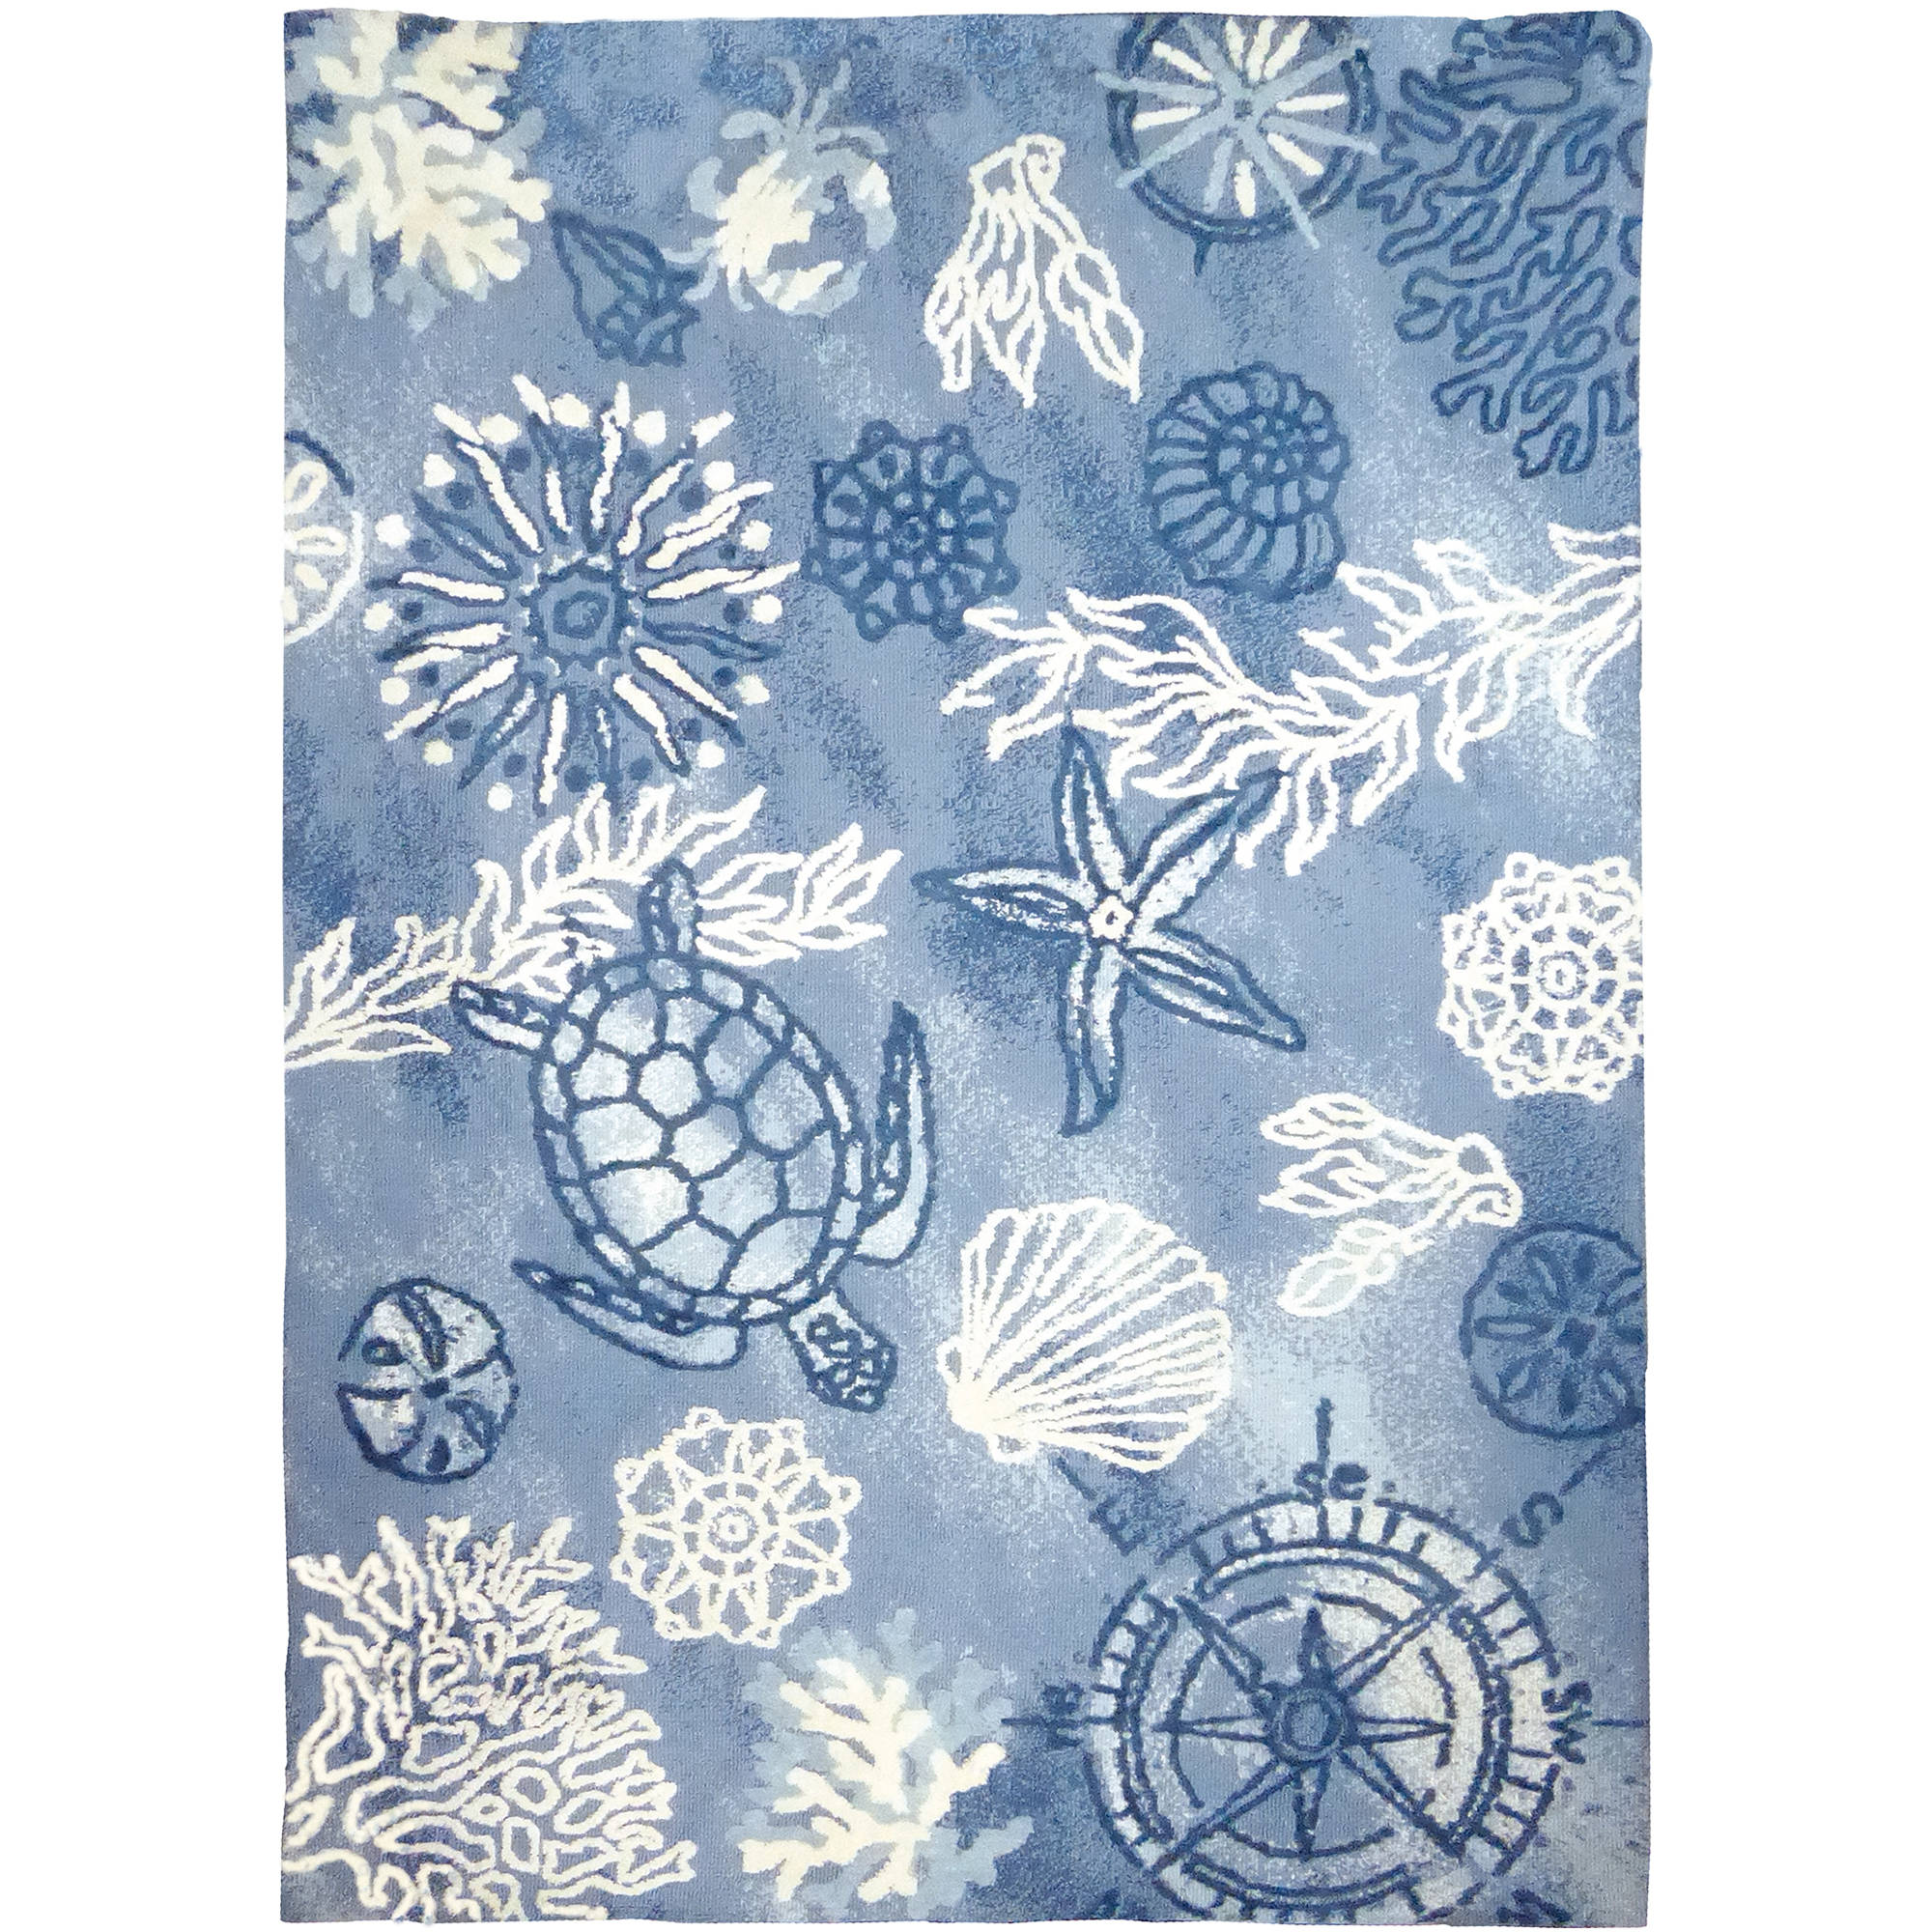 Homefires Coastal Blue Rectangle 5x7 Ft